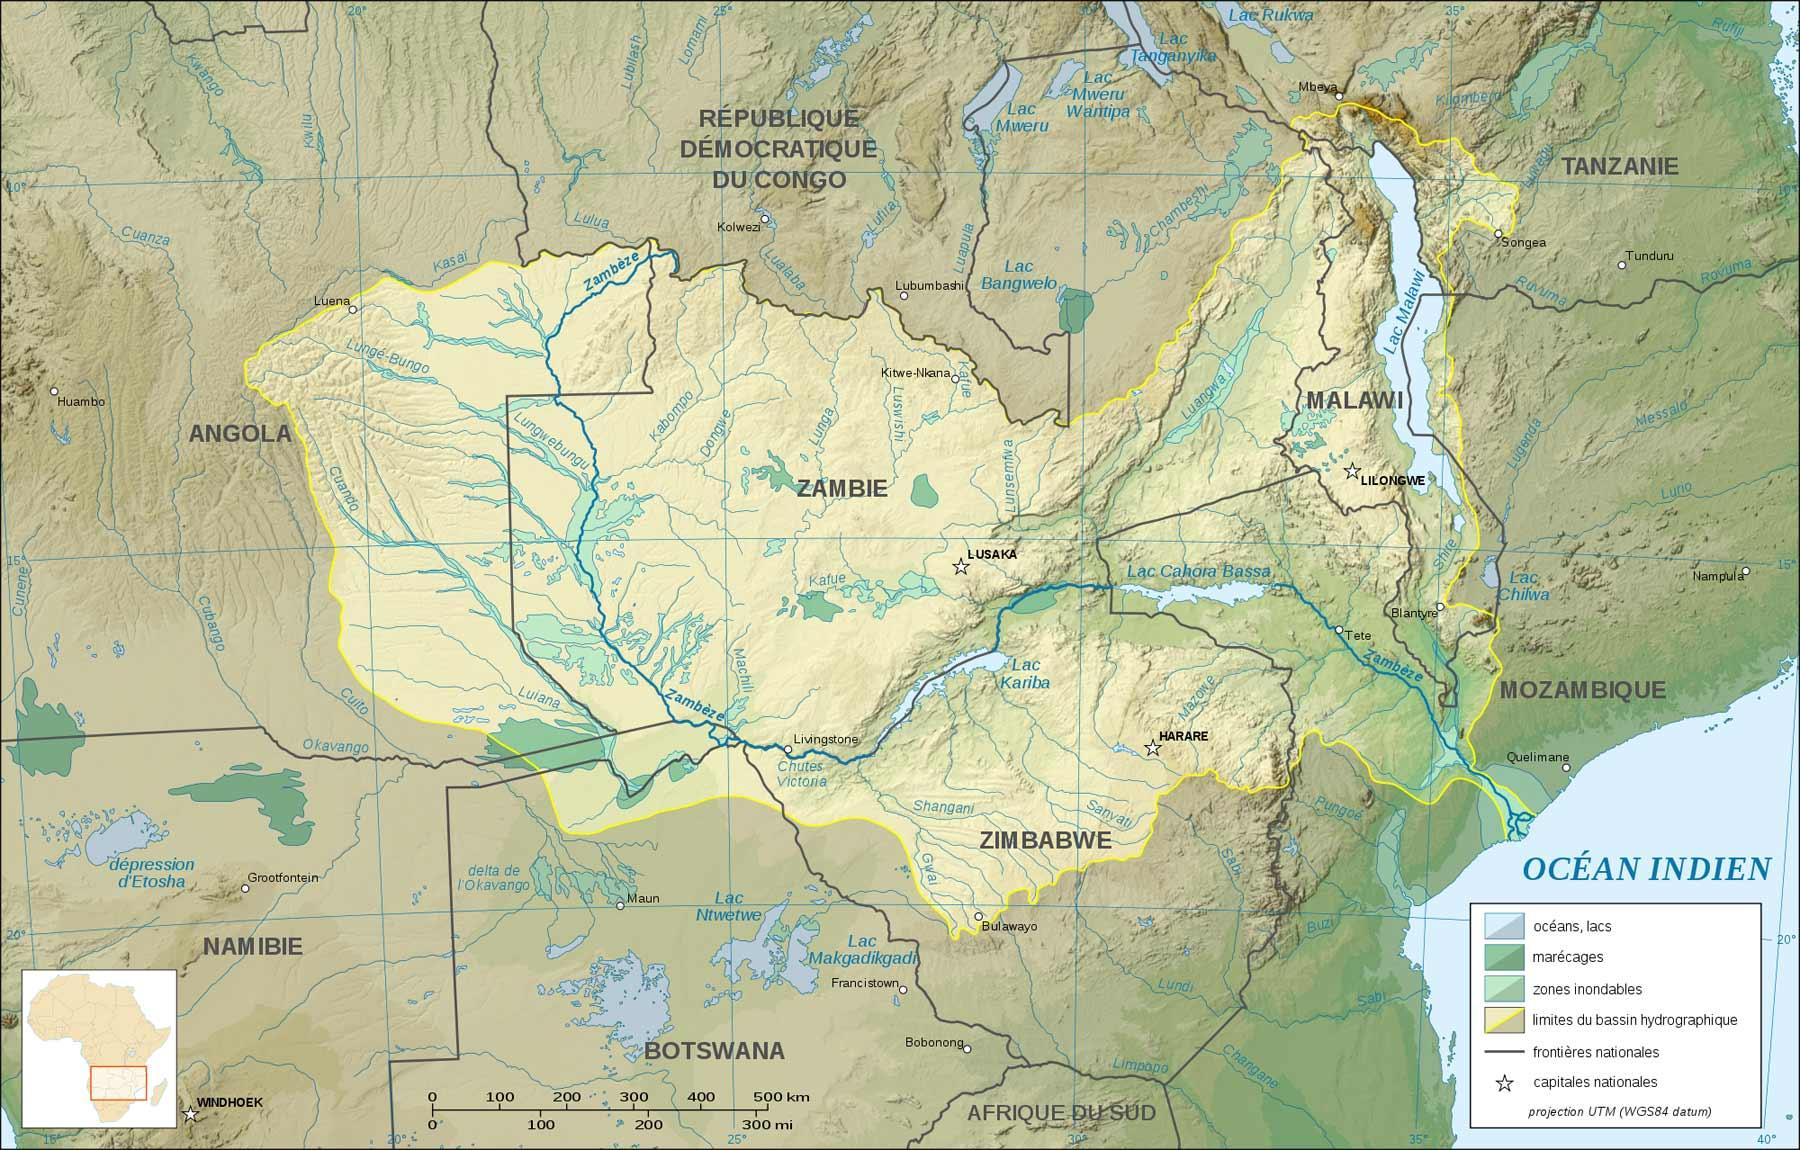 Zambian Map Rivers.Map Of Zambia With Rivers Map Of Zambia Showing Rivers And